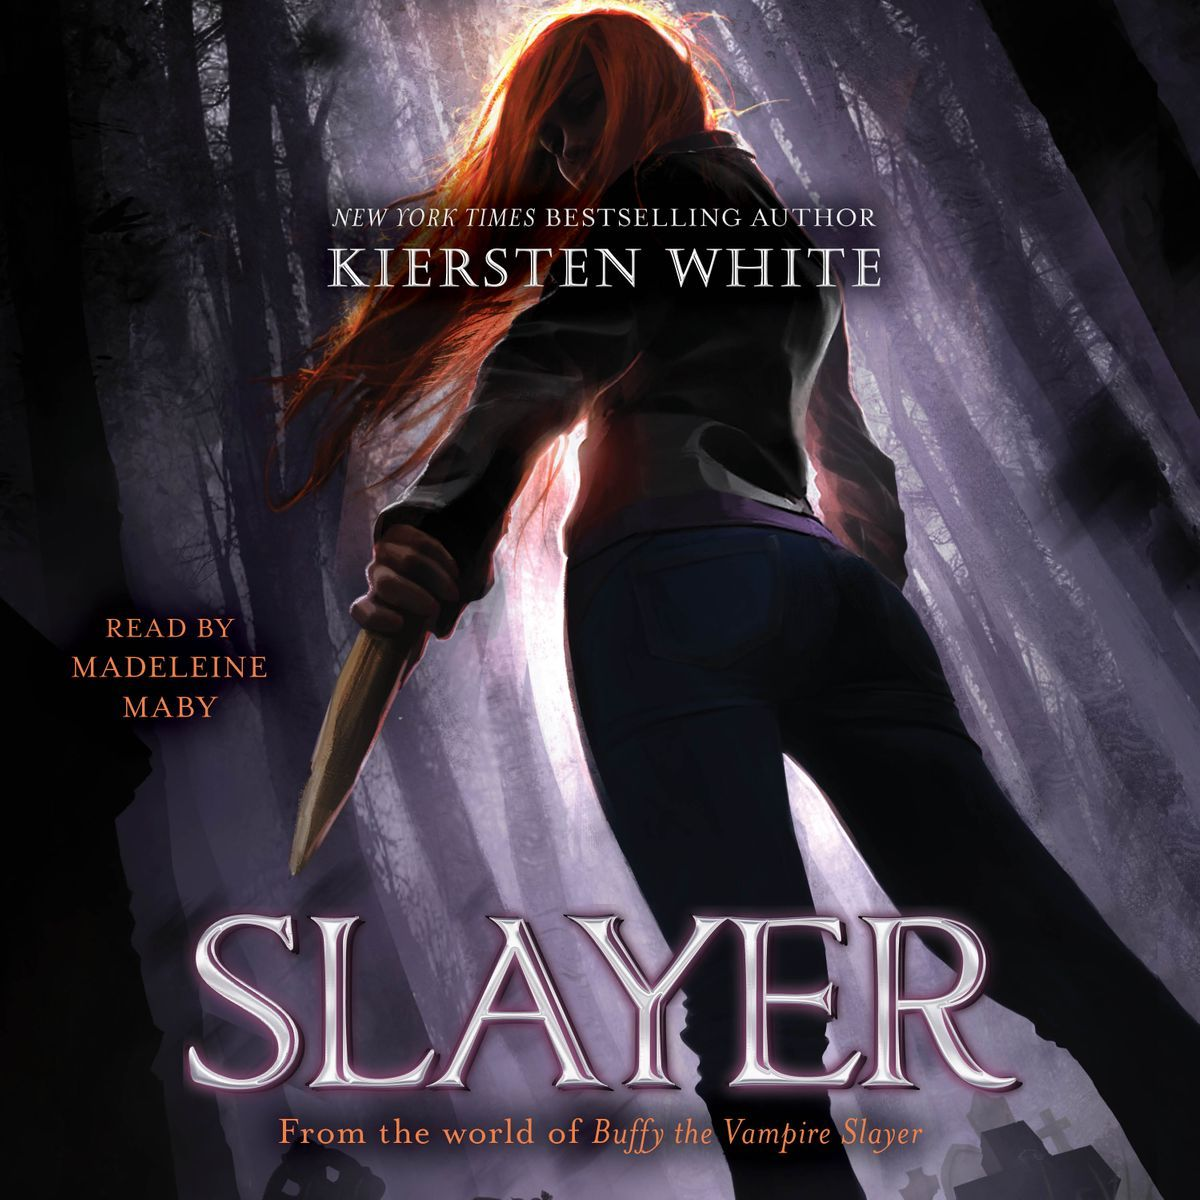 [PDF] Book Download Slayer (Slayer 1) by Kiersten White